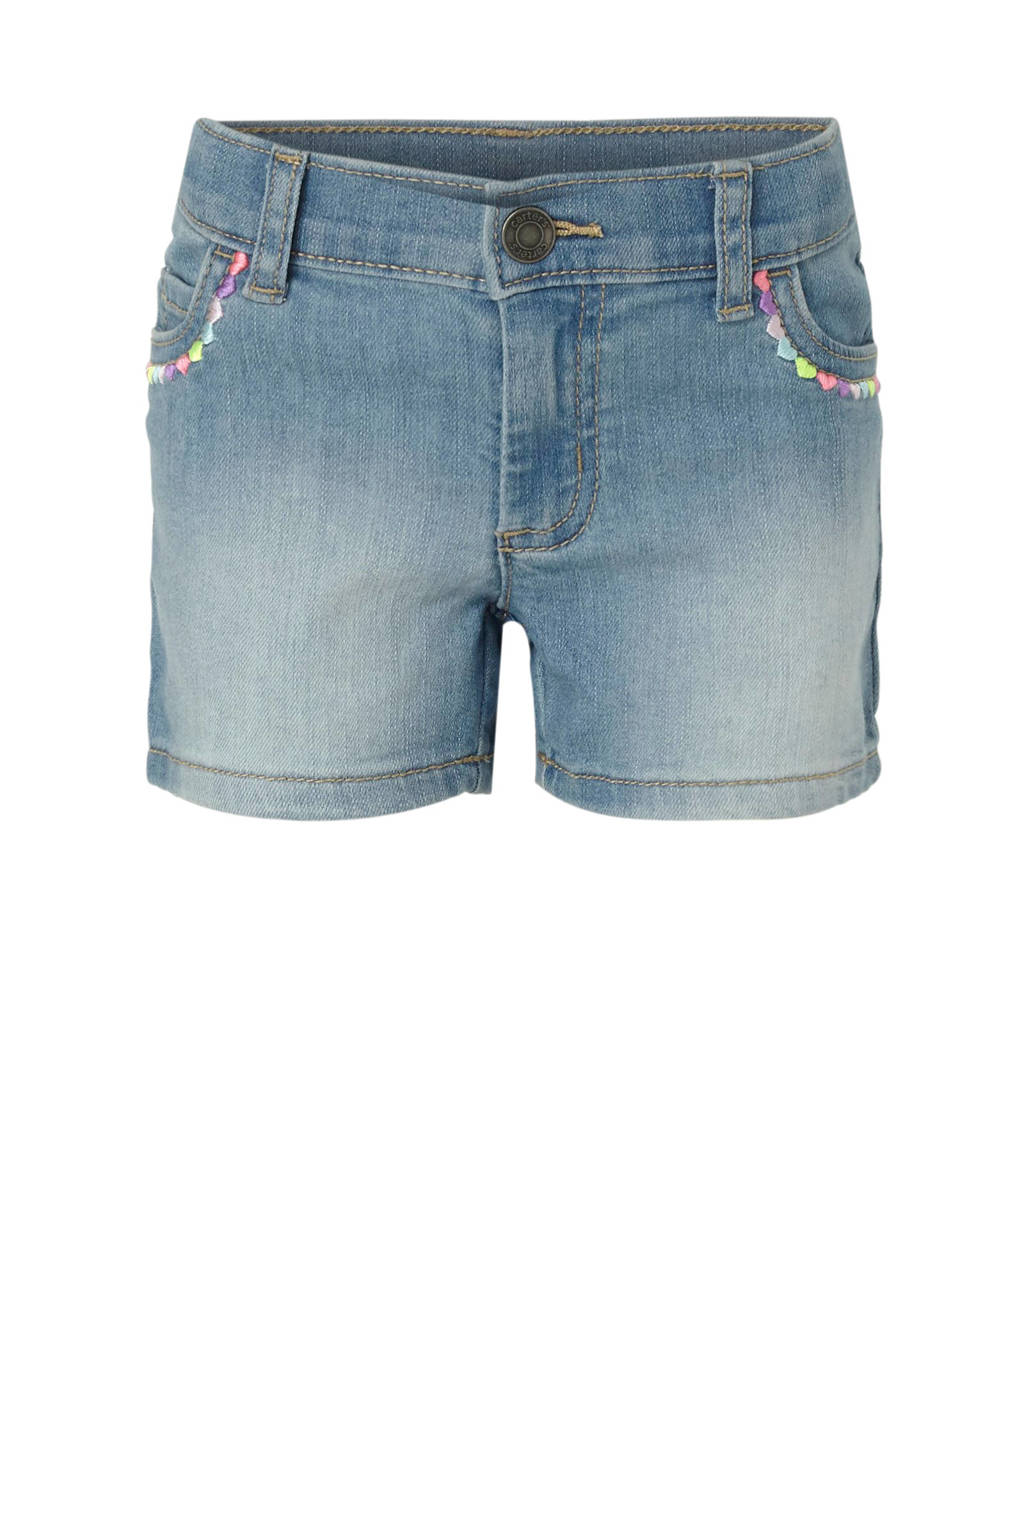 Carter's jeans short met borduursels, Stonewashed